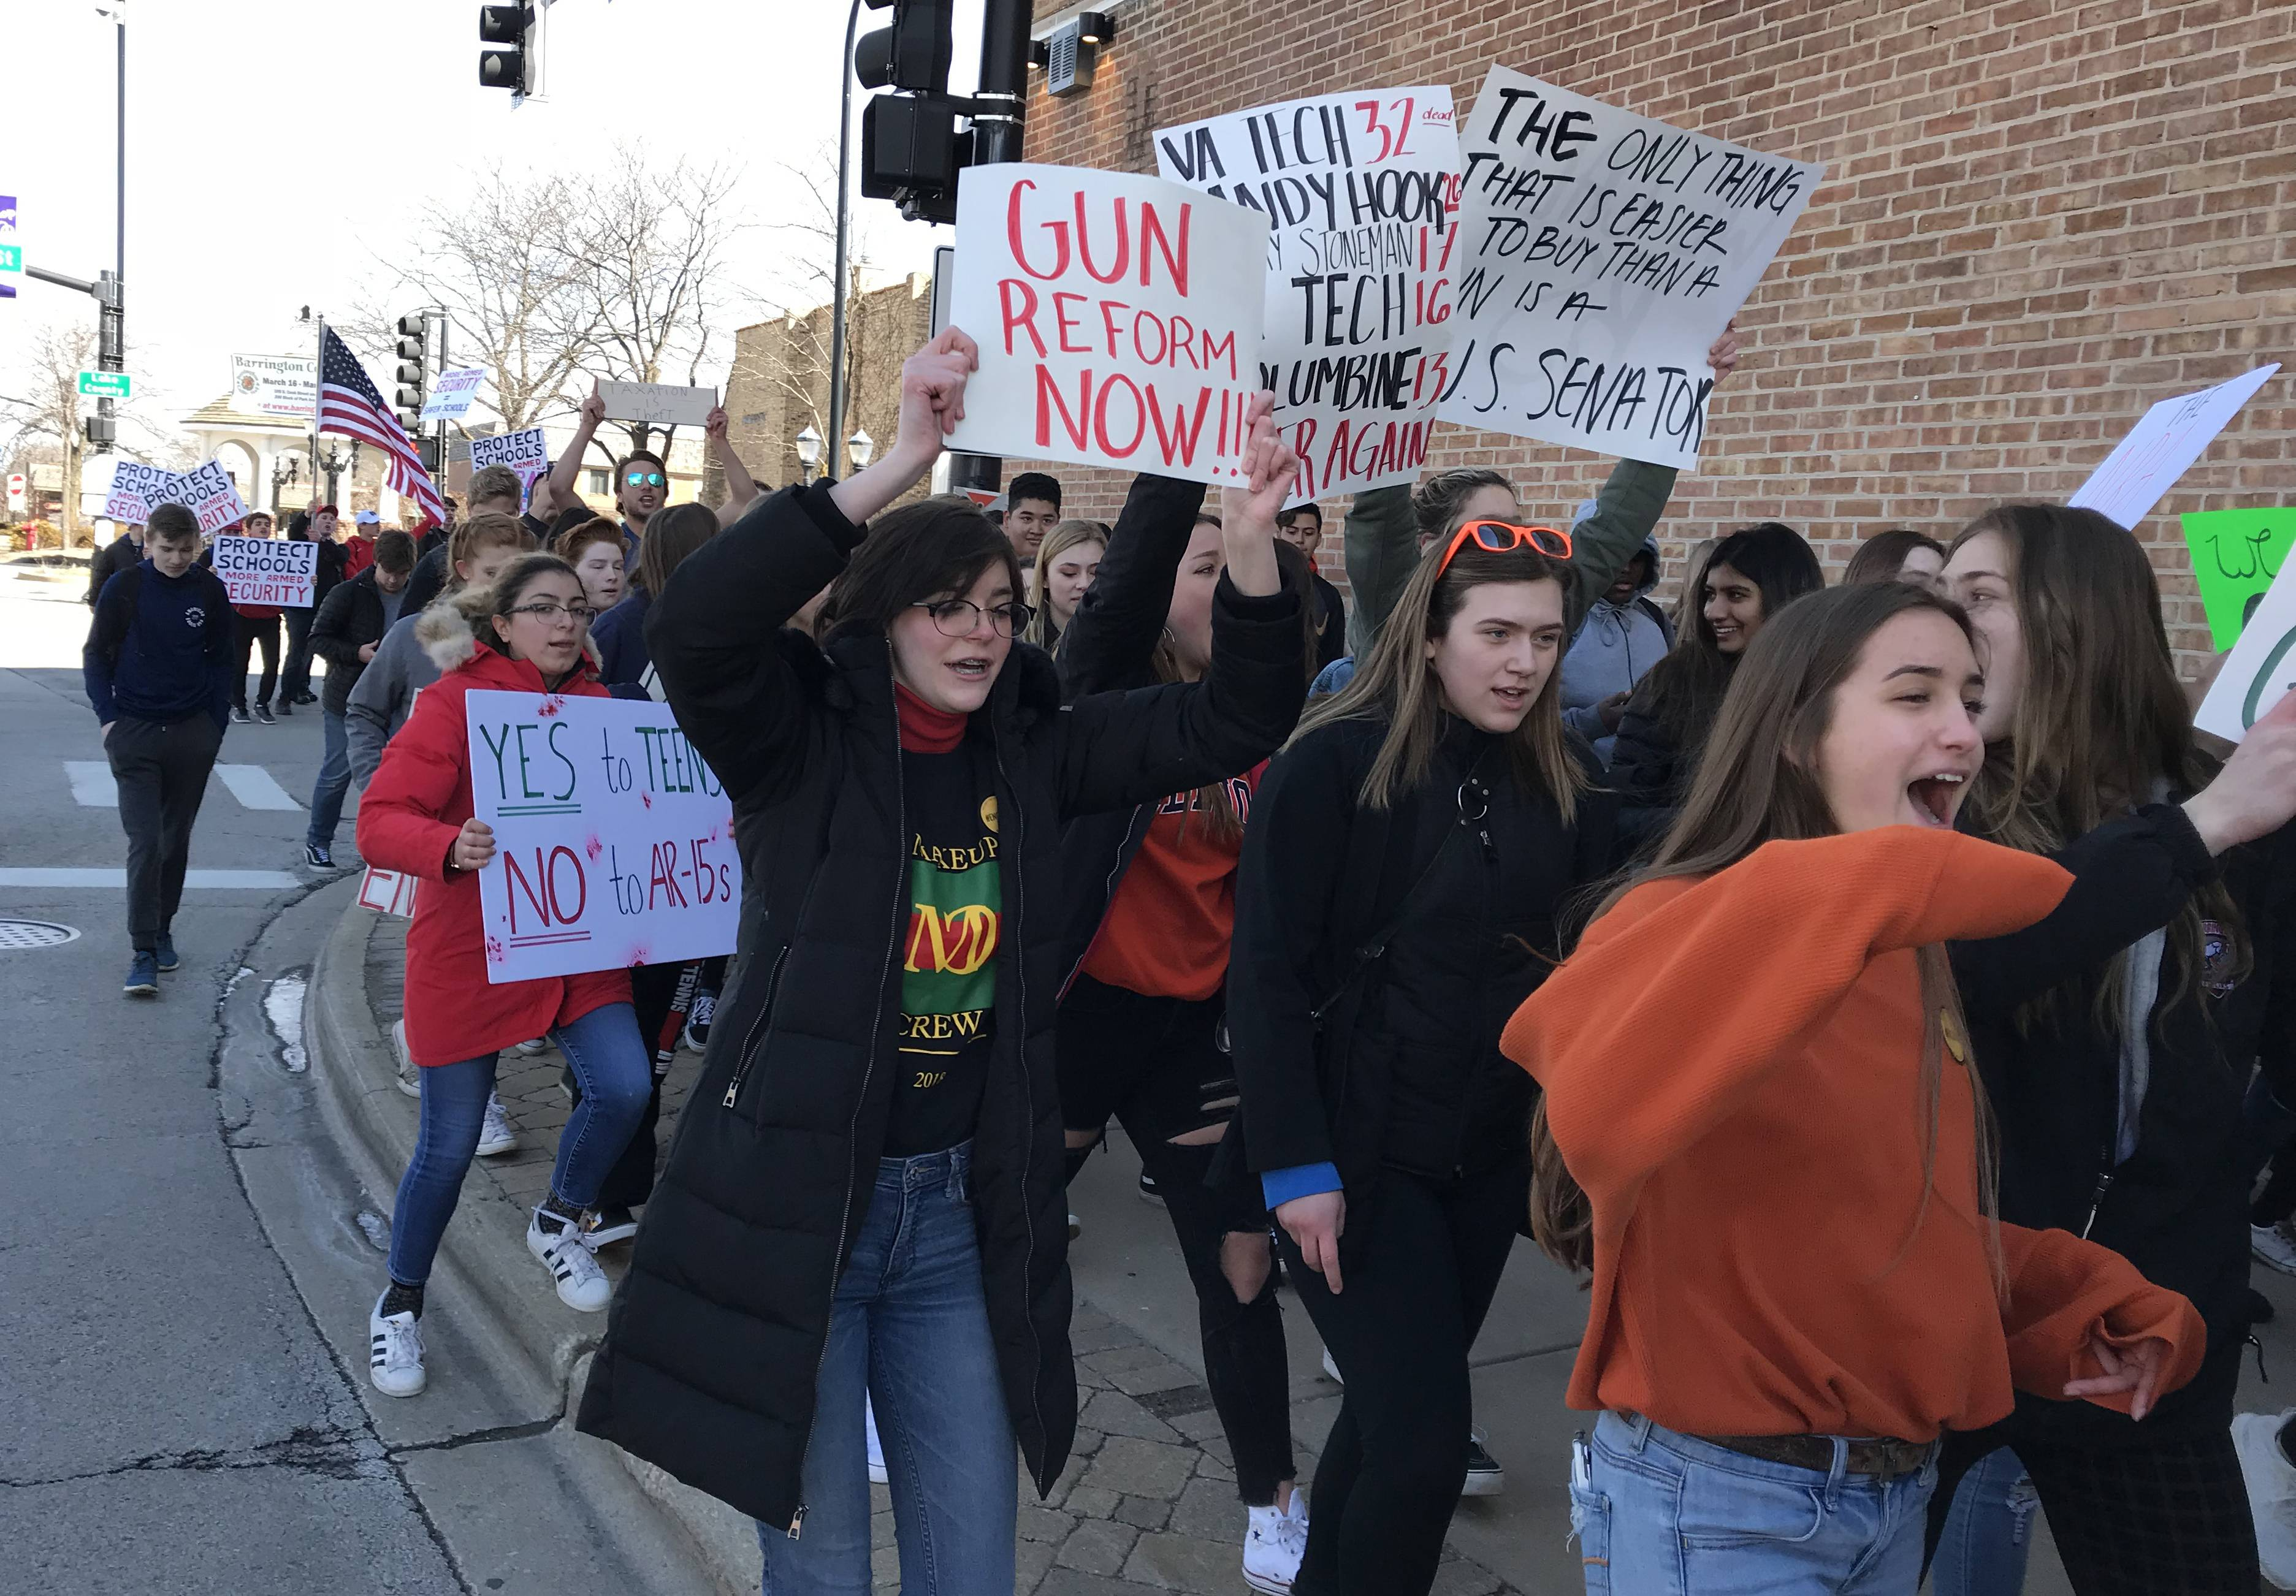 'We are young, and we are strong': Suburban teens join walkout against gun violence